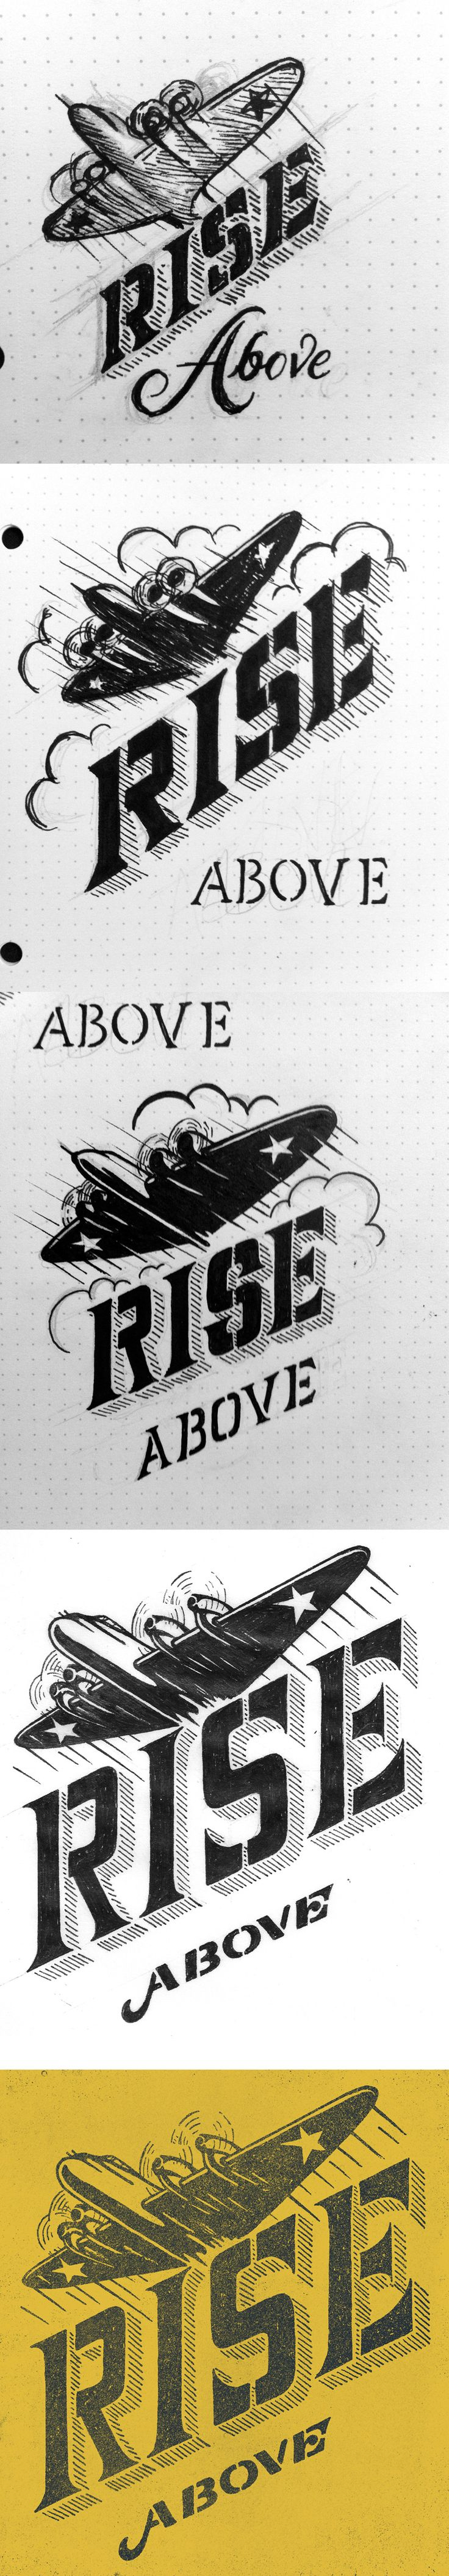 Drew Melton | Rise Above Process